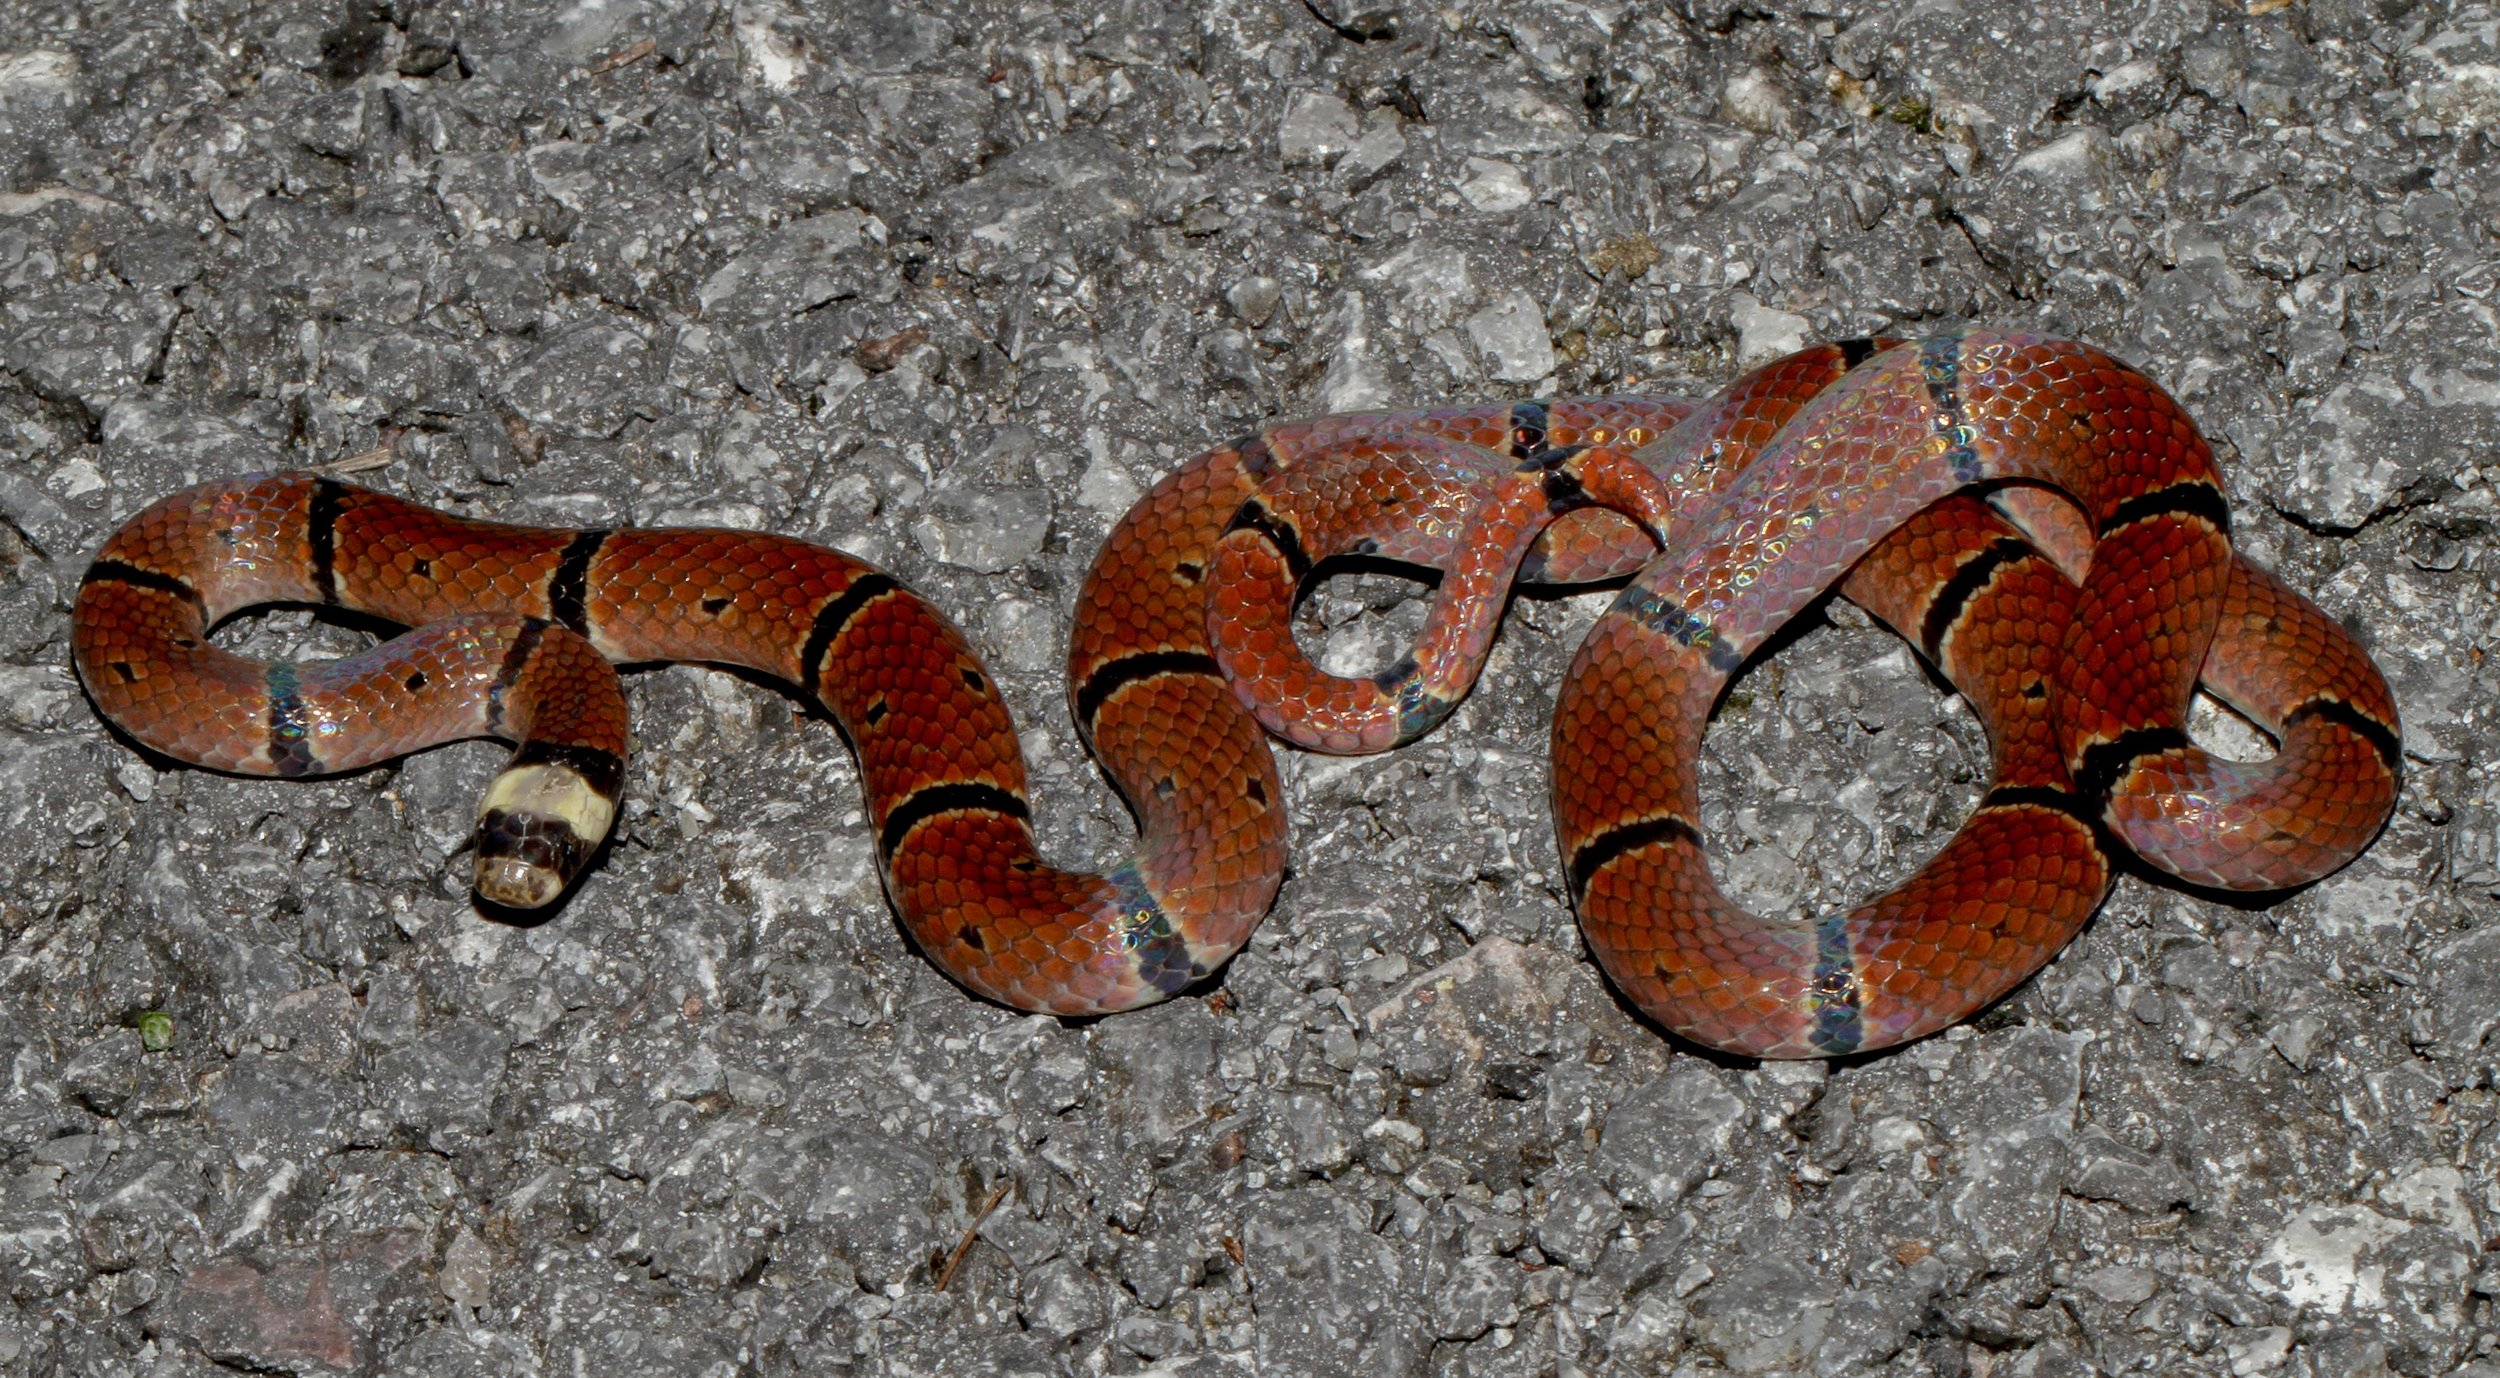 Copy of McClelland's Coral Snake